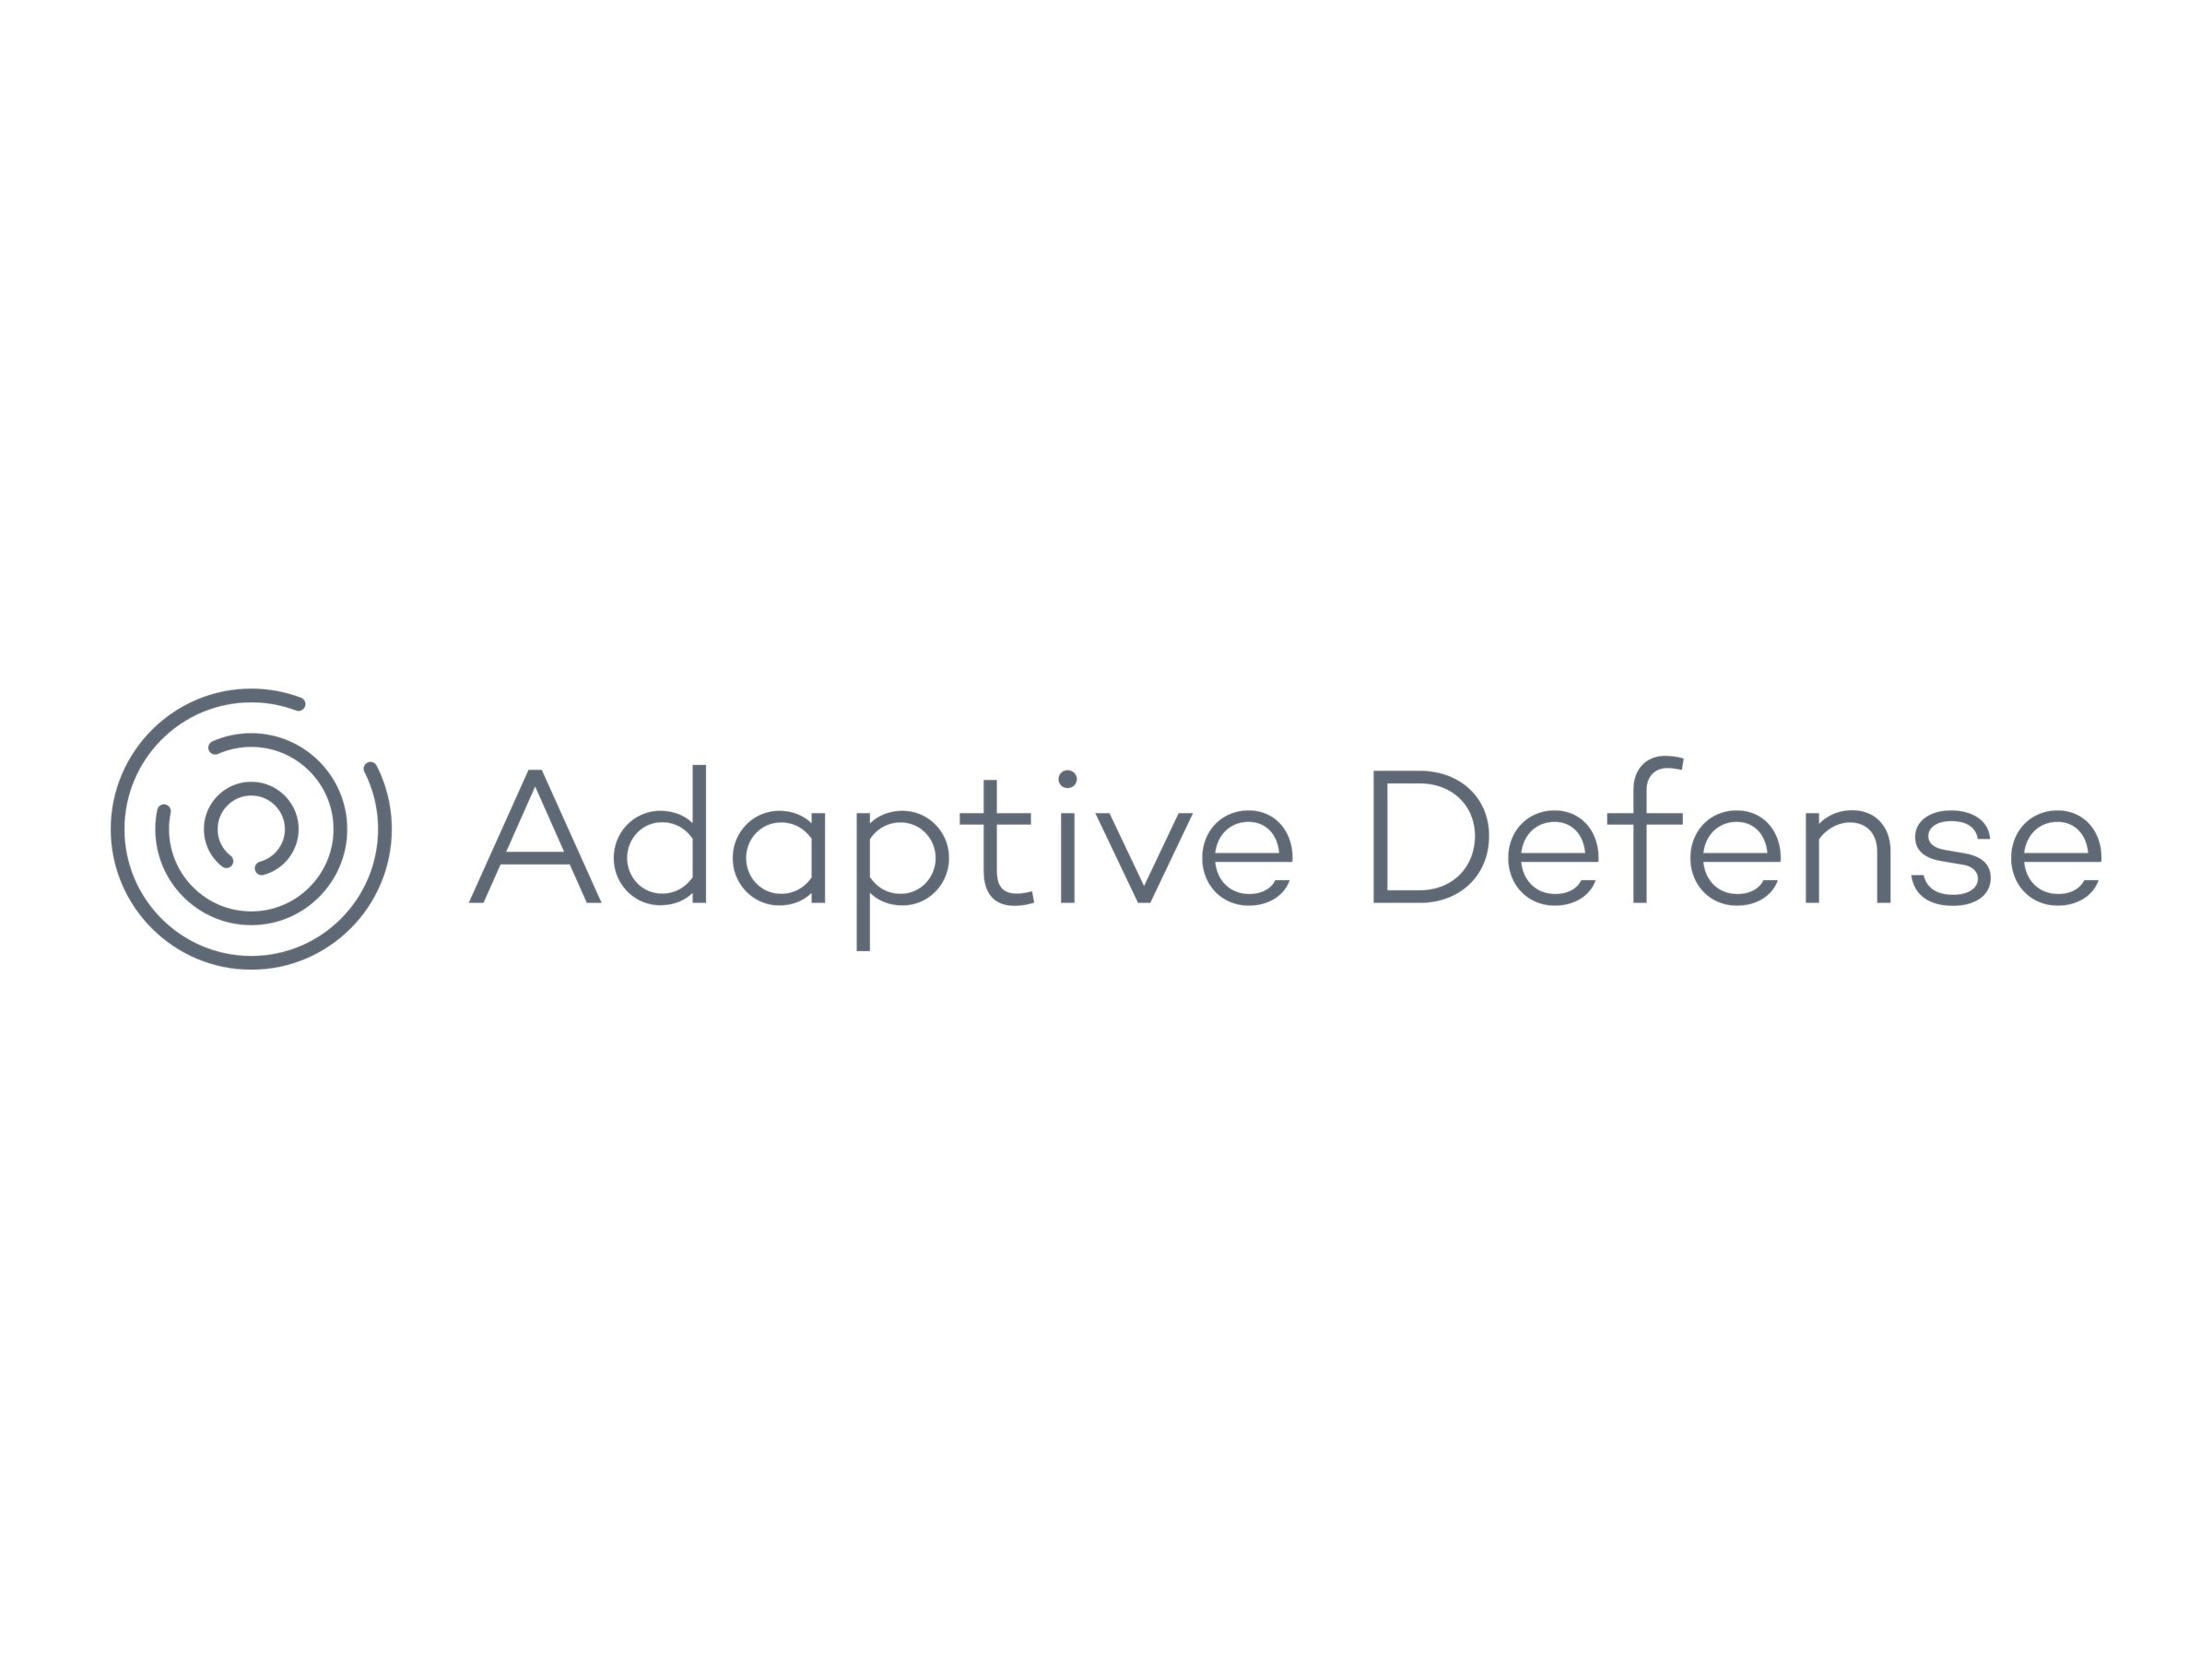 Panda Adaptive Defense - subscription license (3 years) - 1 license - with Advanced Reporting Tool